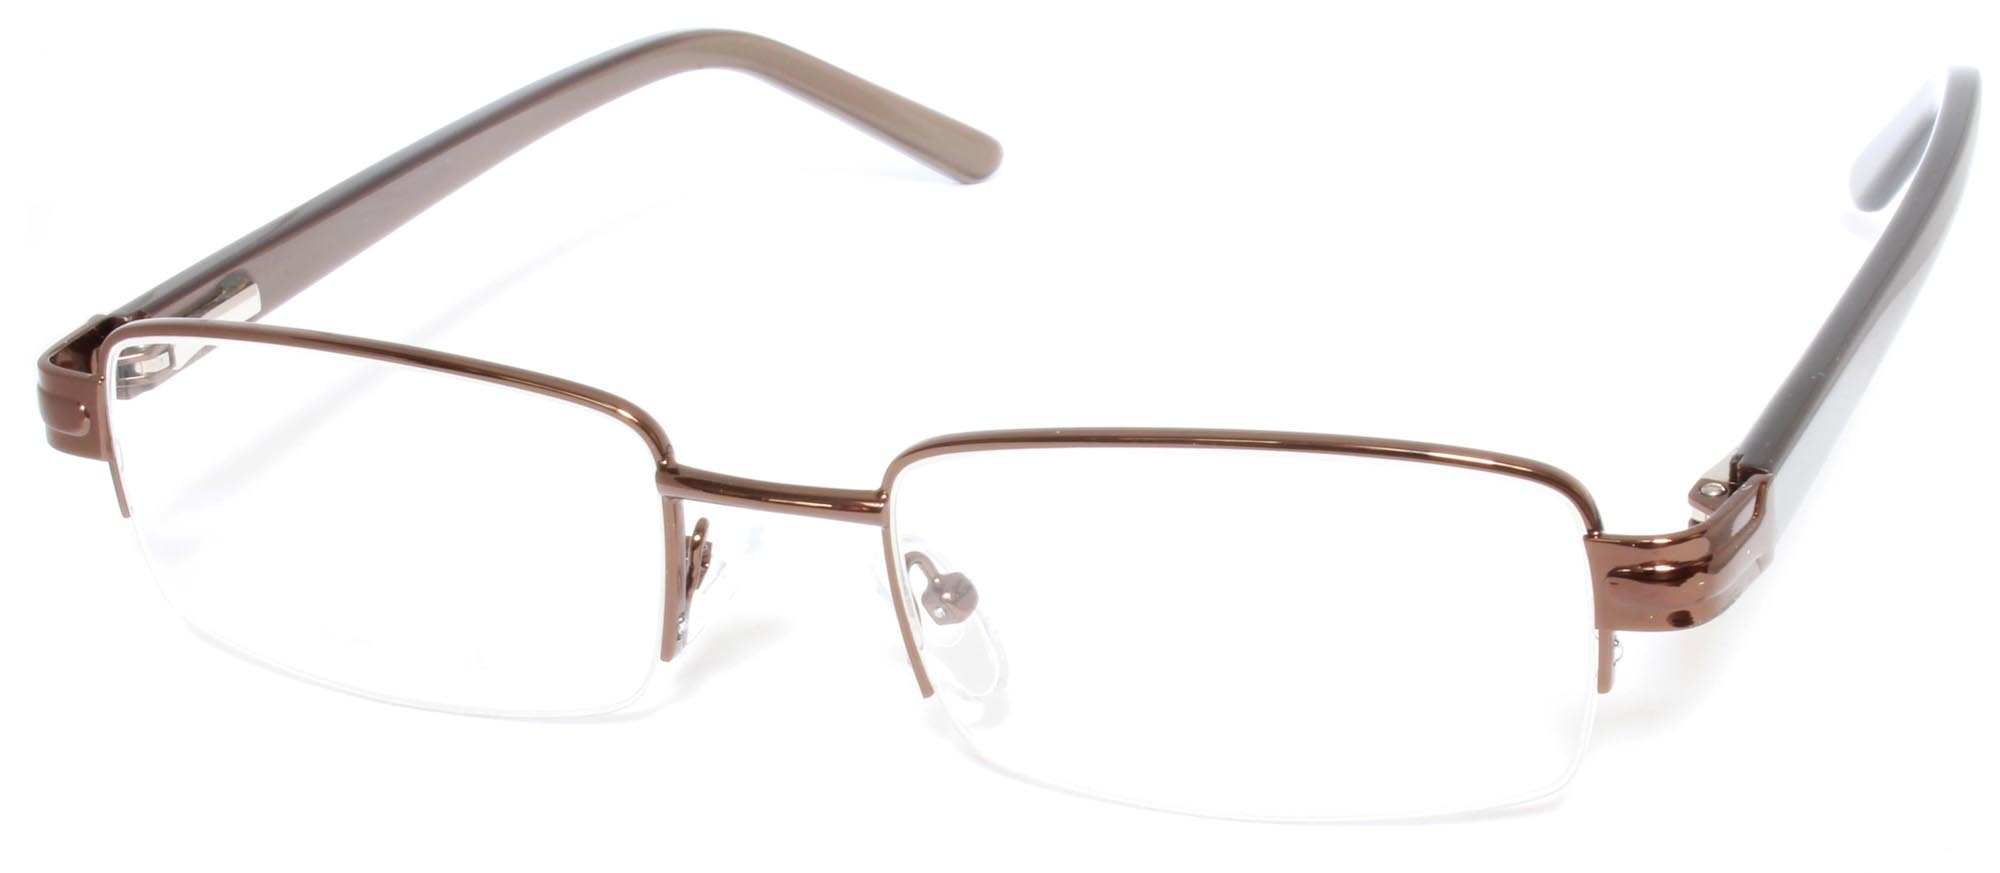 6663eaa1d9f Single Vision Readers with Polycarbonate Aspheric Lenses Style   96